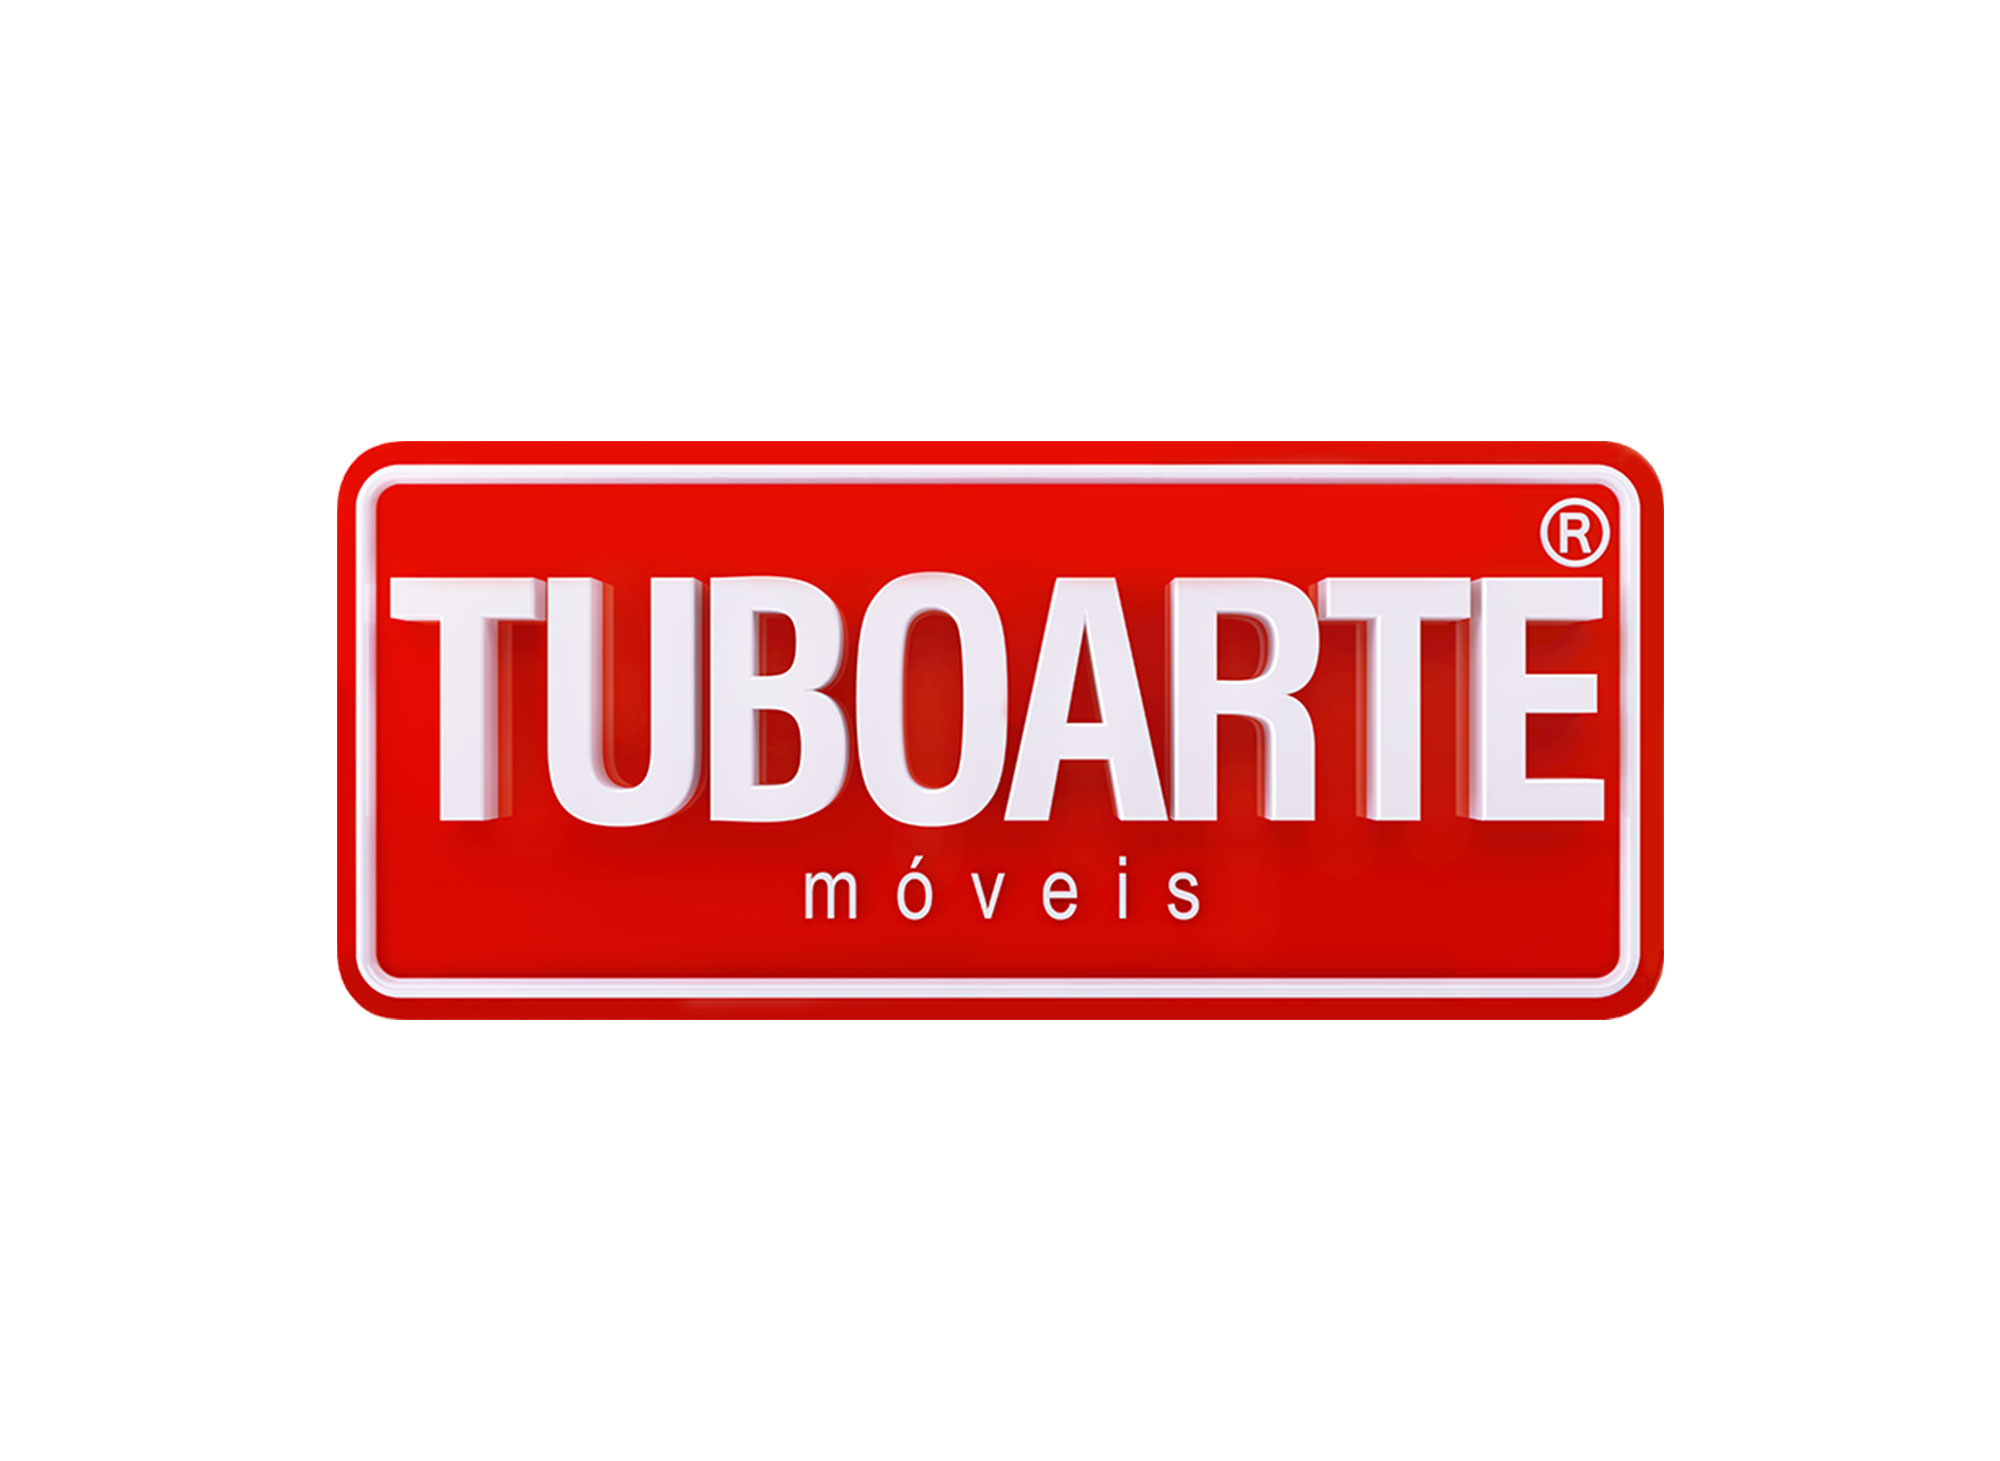 tuboarte-fabricante-moveis-cliente-agencia-diretriz-digital-marketing-fortaleza